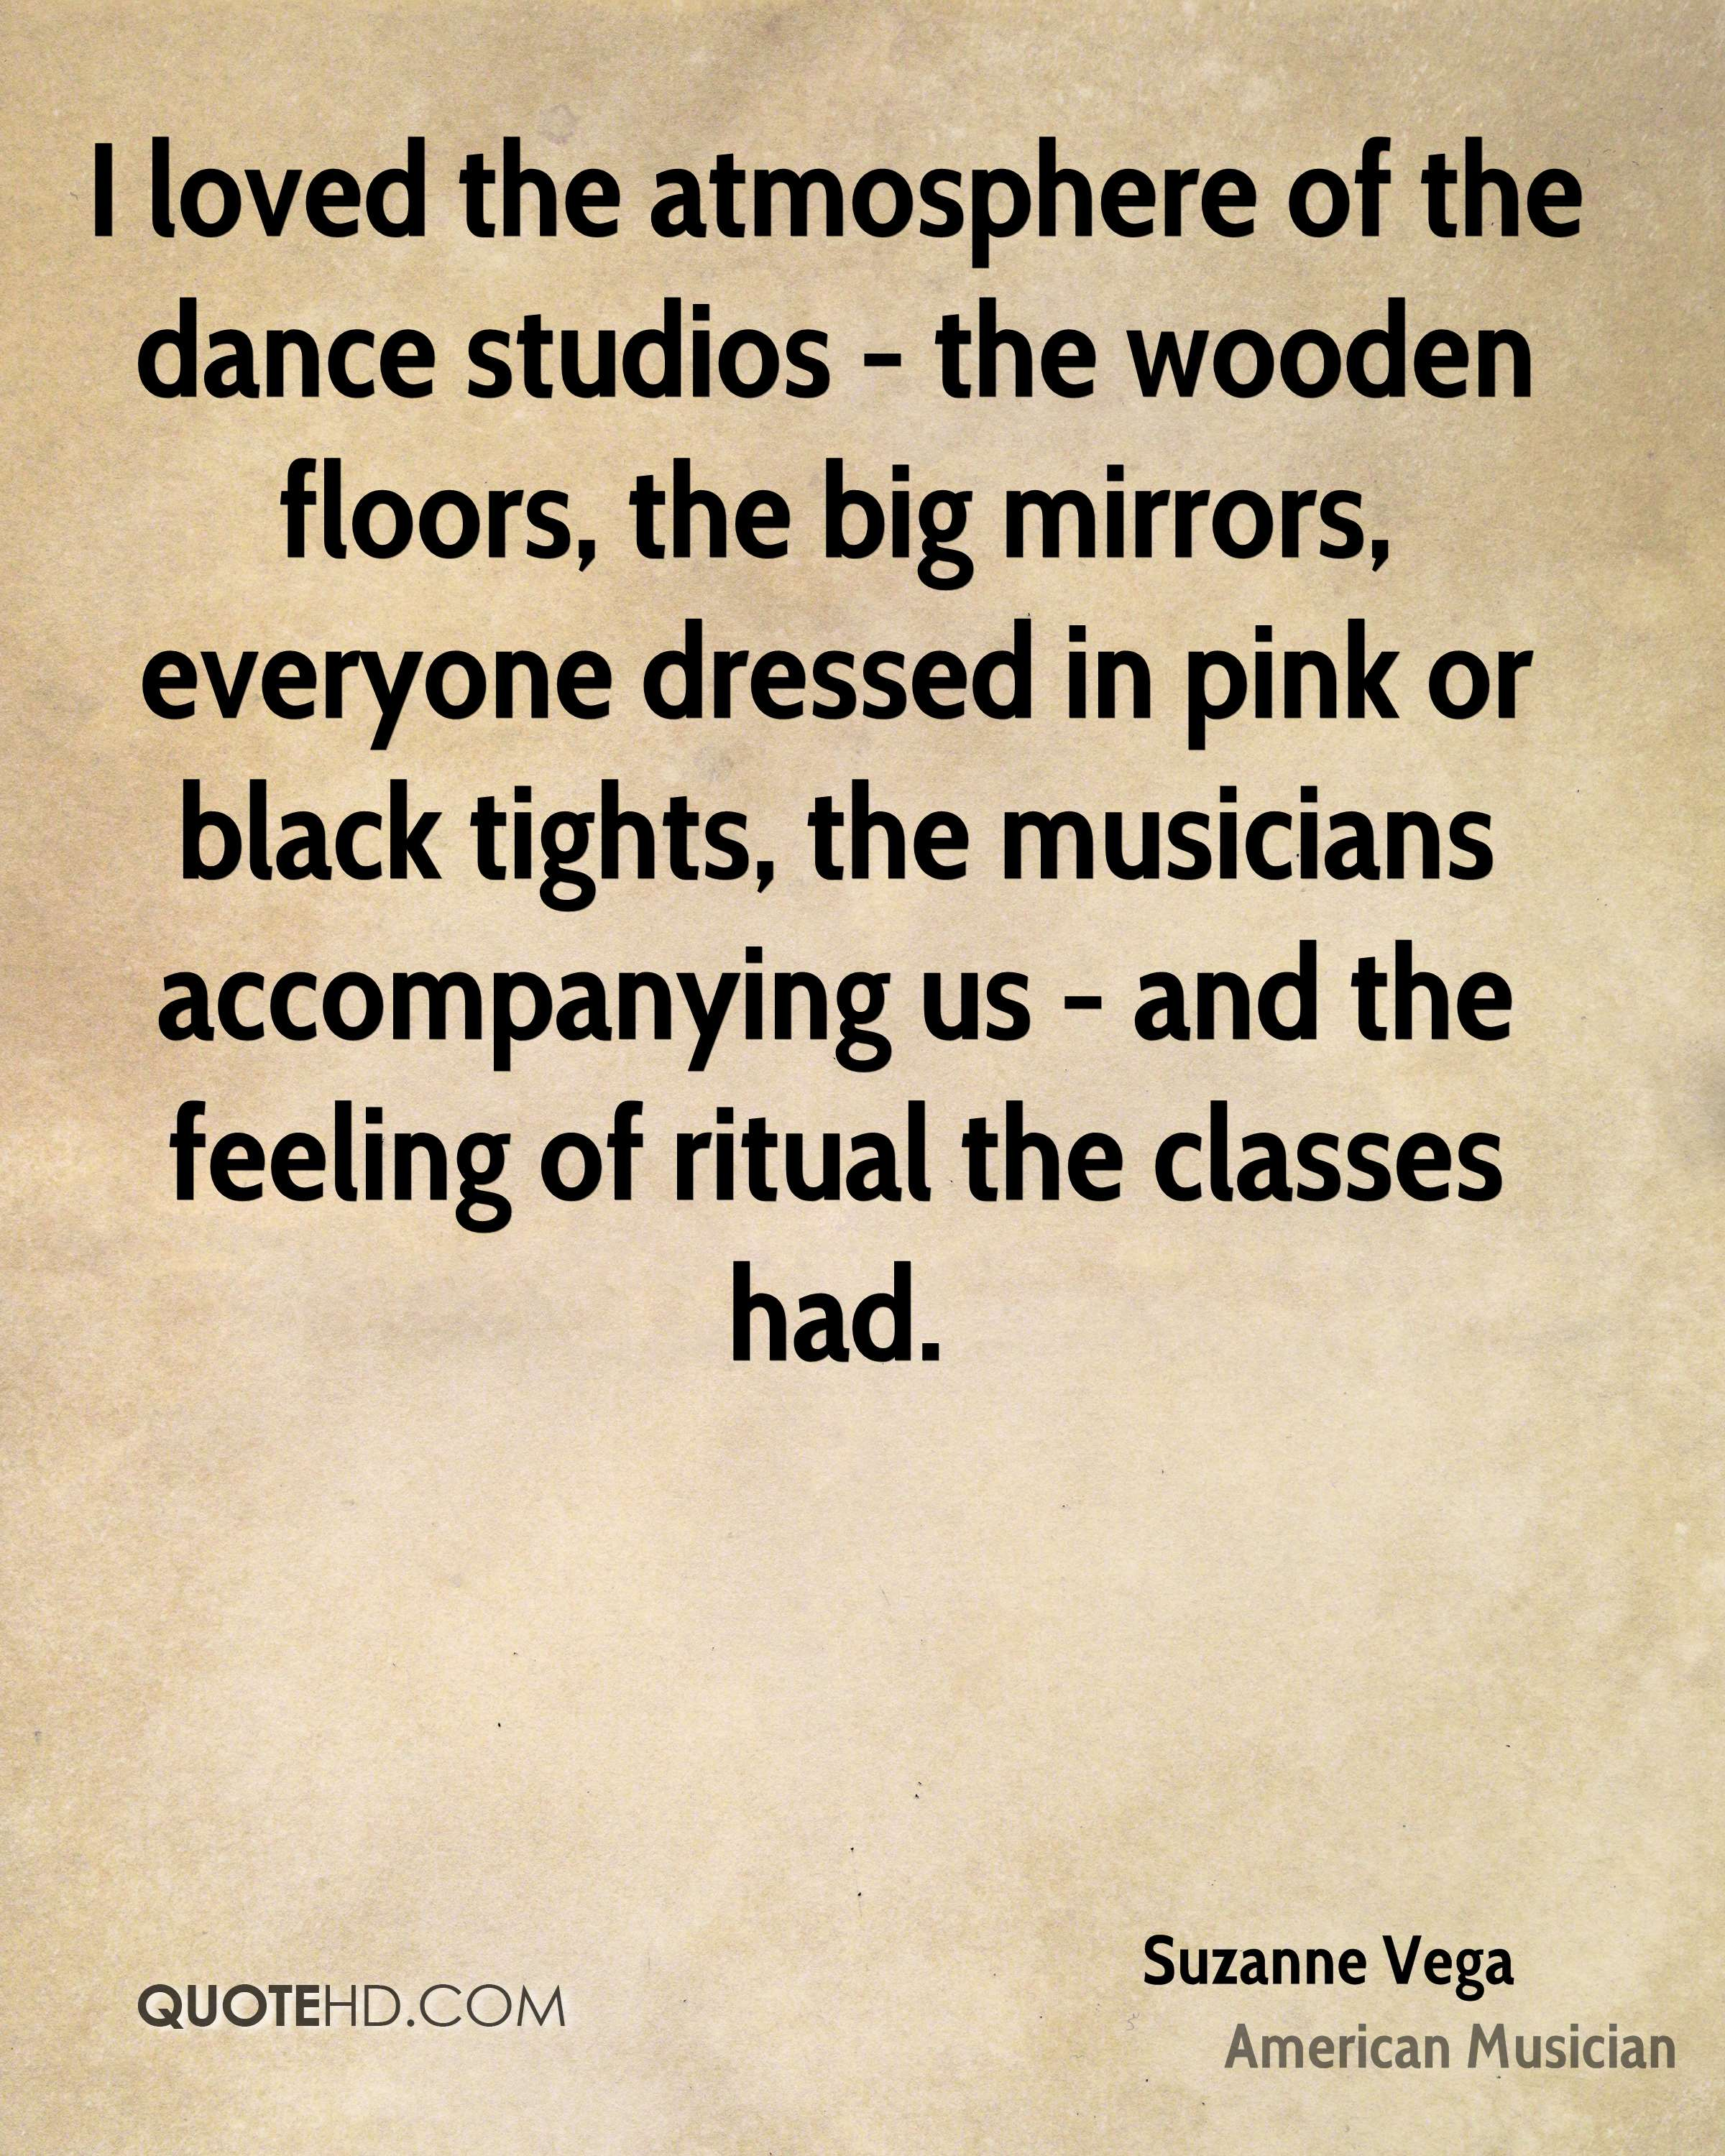 I loved the atmosphere of the dance studios - the wooden floors, the big mirrors, everyone dressed in pink or black tights, the musicians accompanying us - and the feeling of ritual the classes had.